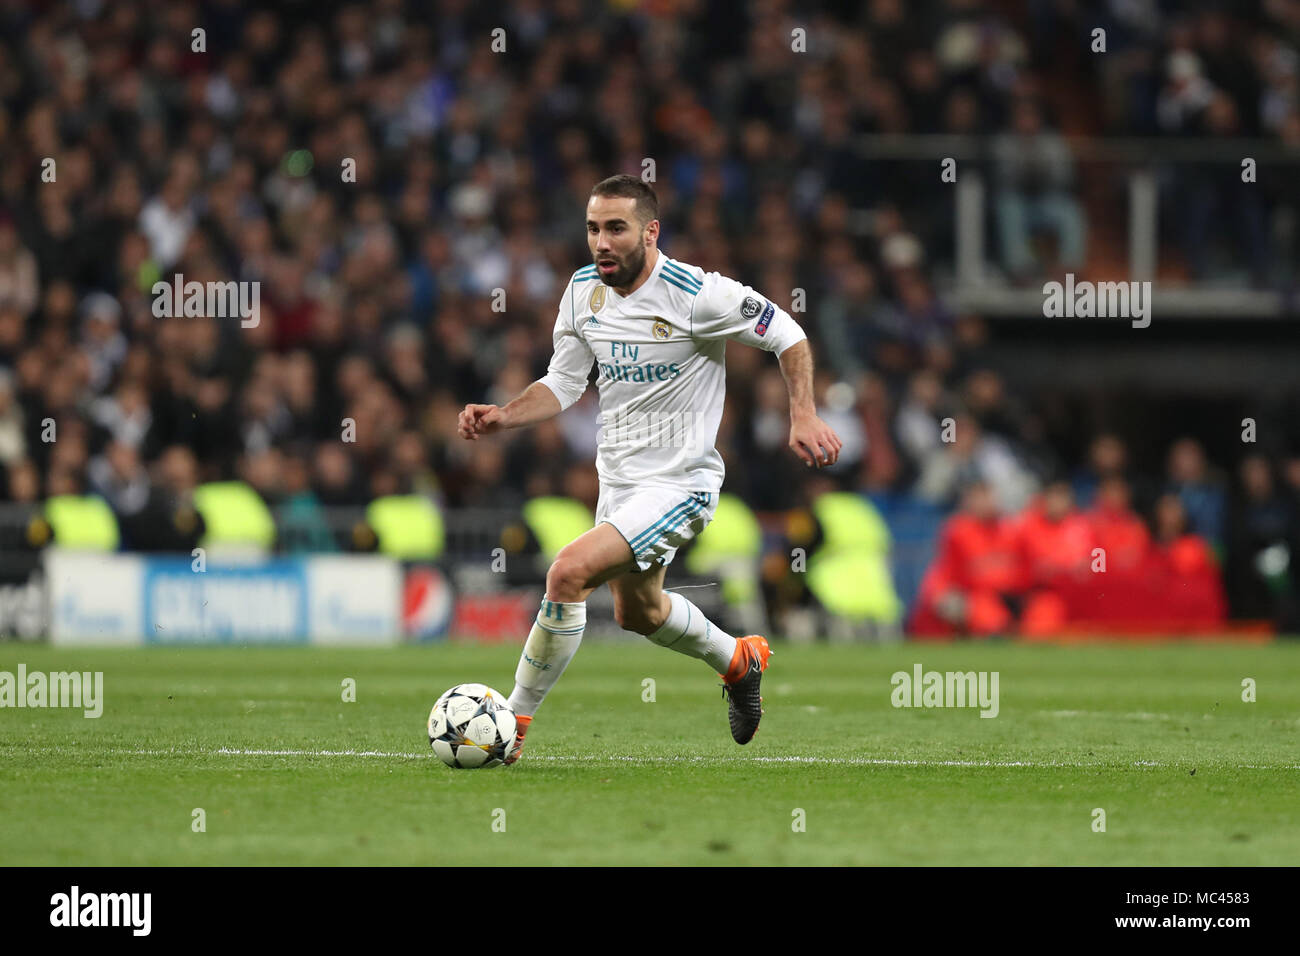 Madrid, Spain. 11th Apr, 2018. DANIEL CARVAJAL of Real Madrid during the UEFA Champions League, quarter final, 2nd leg football match between Real Madrid CF and Juventus FC on April 11, 2018 at Santiago Bernabeu stadium in Madrid, Spain Credit: Manuel Blondeau/ZUMA Wire/Alamy Live News - Stock Image